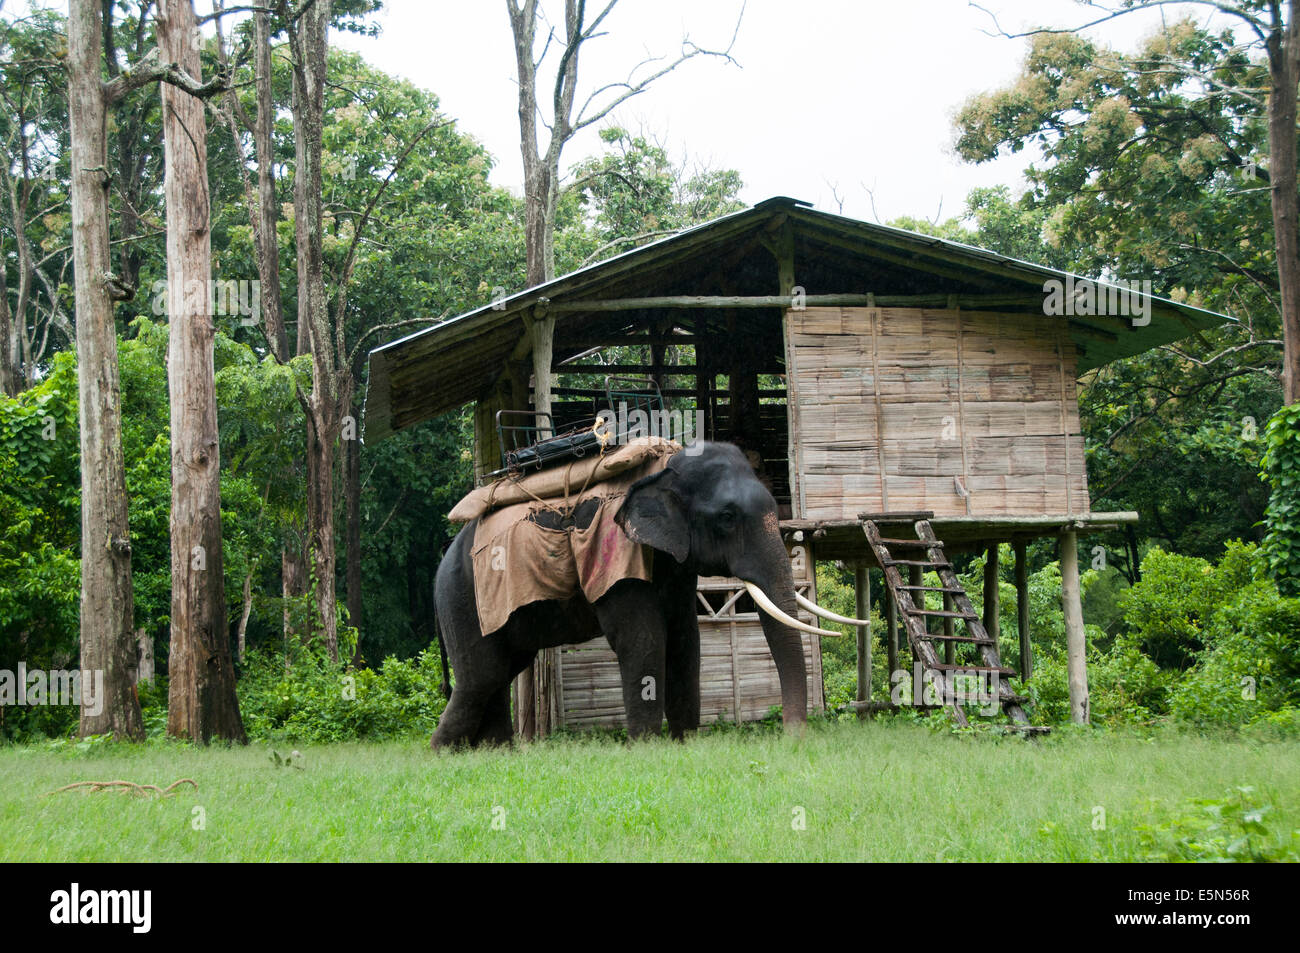 Tamed asian elephant used for forest safari - Stock Image